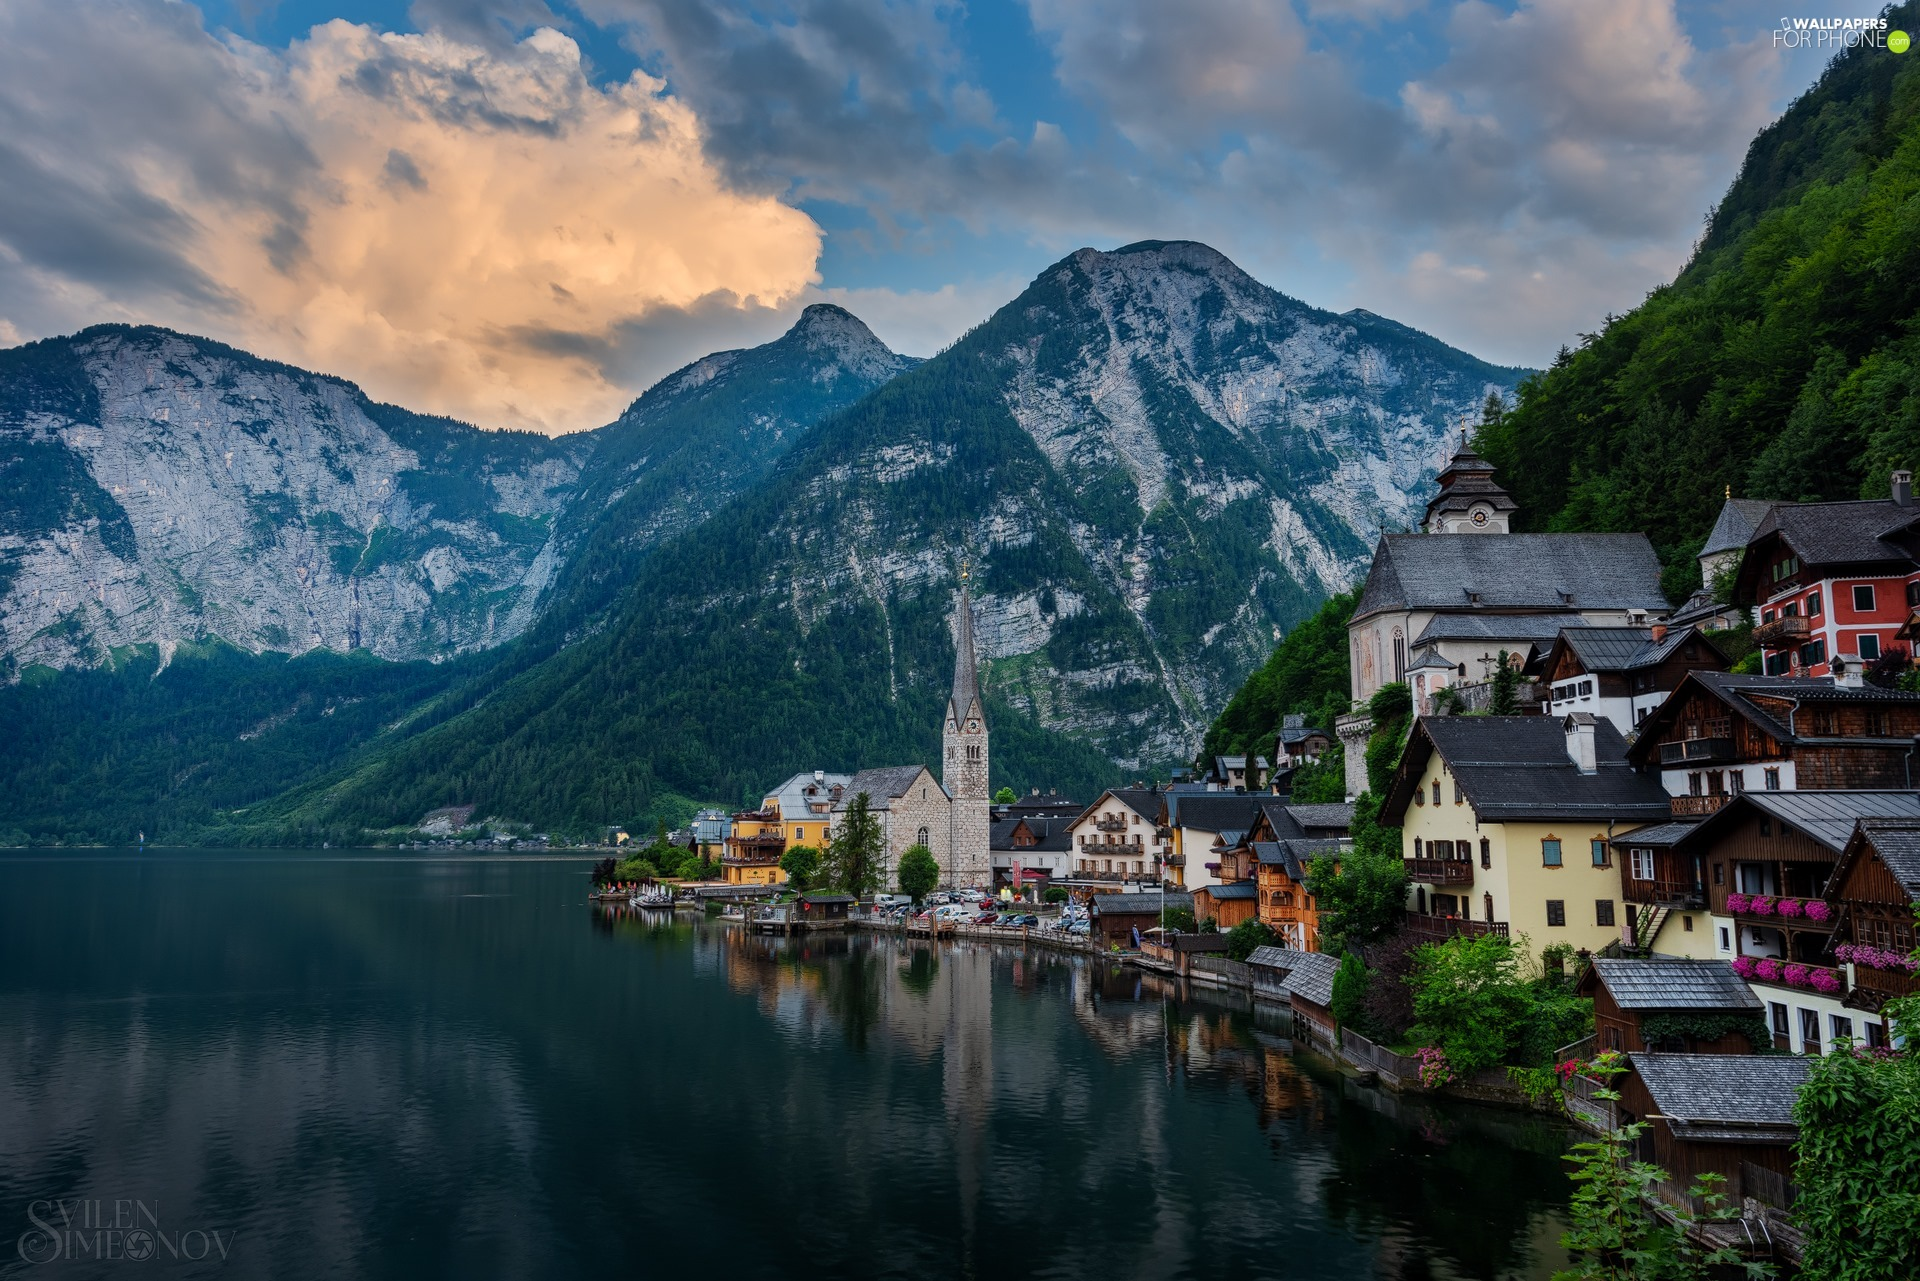 Hallstattersee Lake, Austria, Church, Houses, forest, clouds, viewes, Town, Hallstatt, trees, Mountains